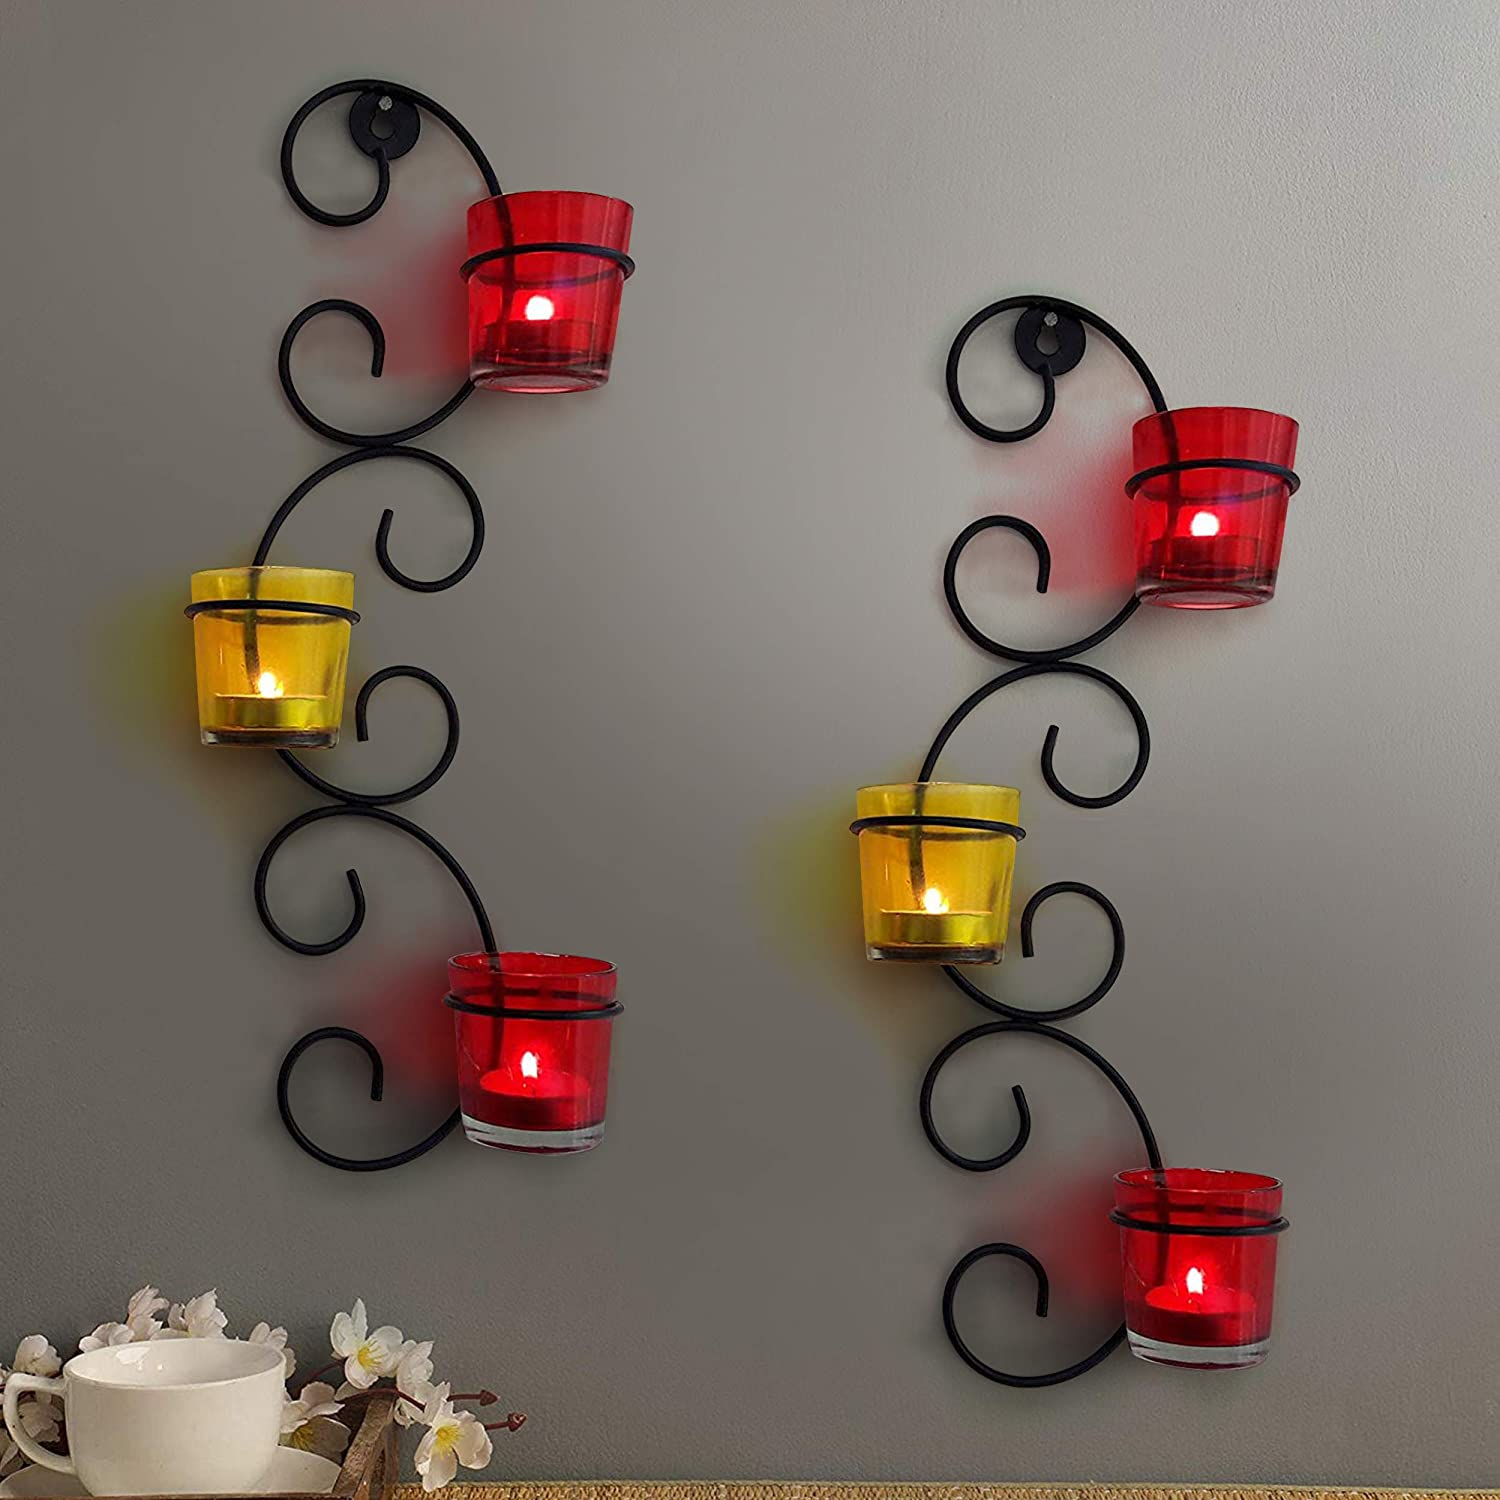 TIED RIBBONS Decorative Wall Hanging Tealight Candle Holder Metal Wall Sconce with Glass Cups and Tealight Candles for Christmas Home Decoration (Set of 2)